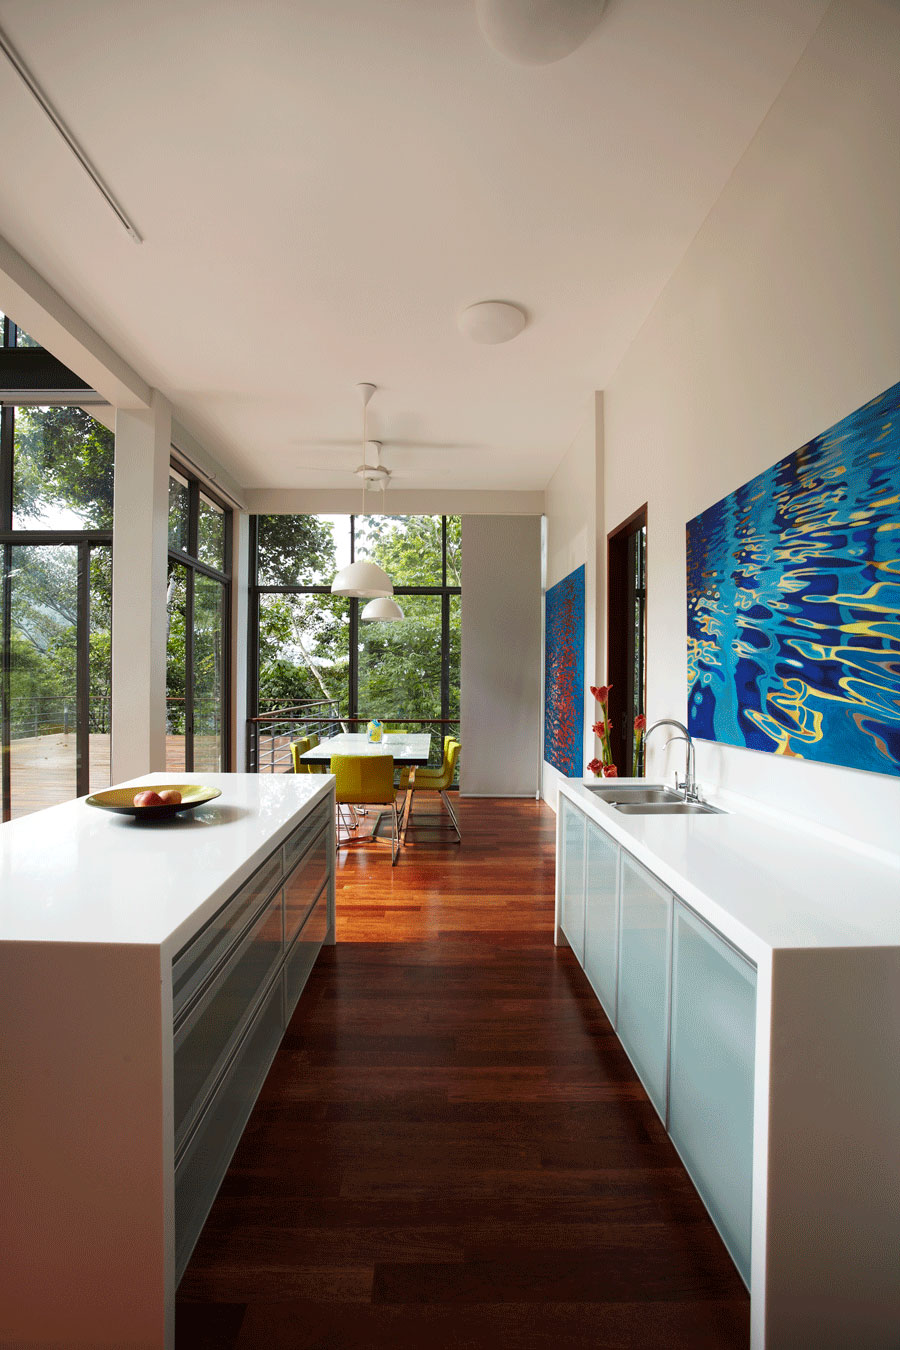 Dining Space, Compact Kitchen, Art, Modern Hillside Home in Janda Baik, Malaysia